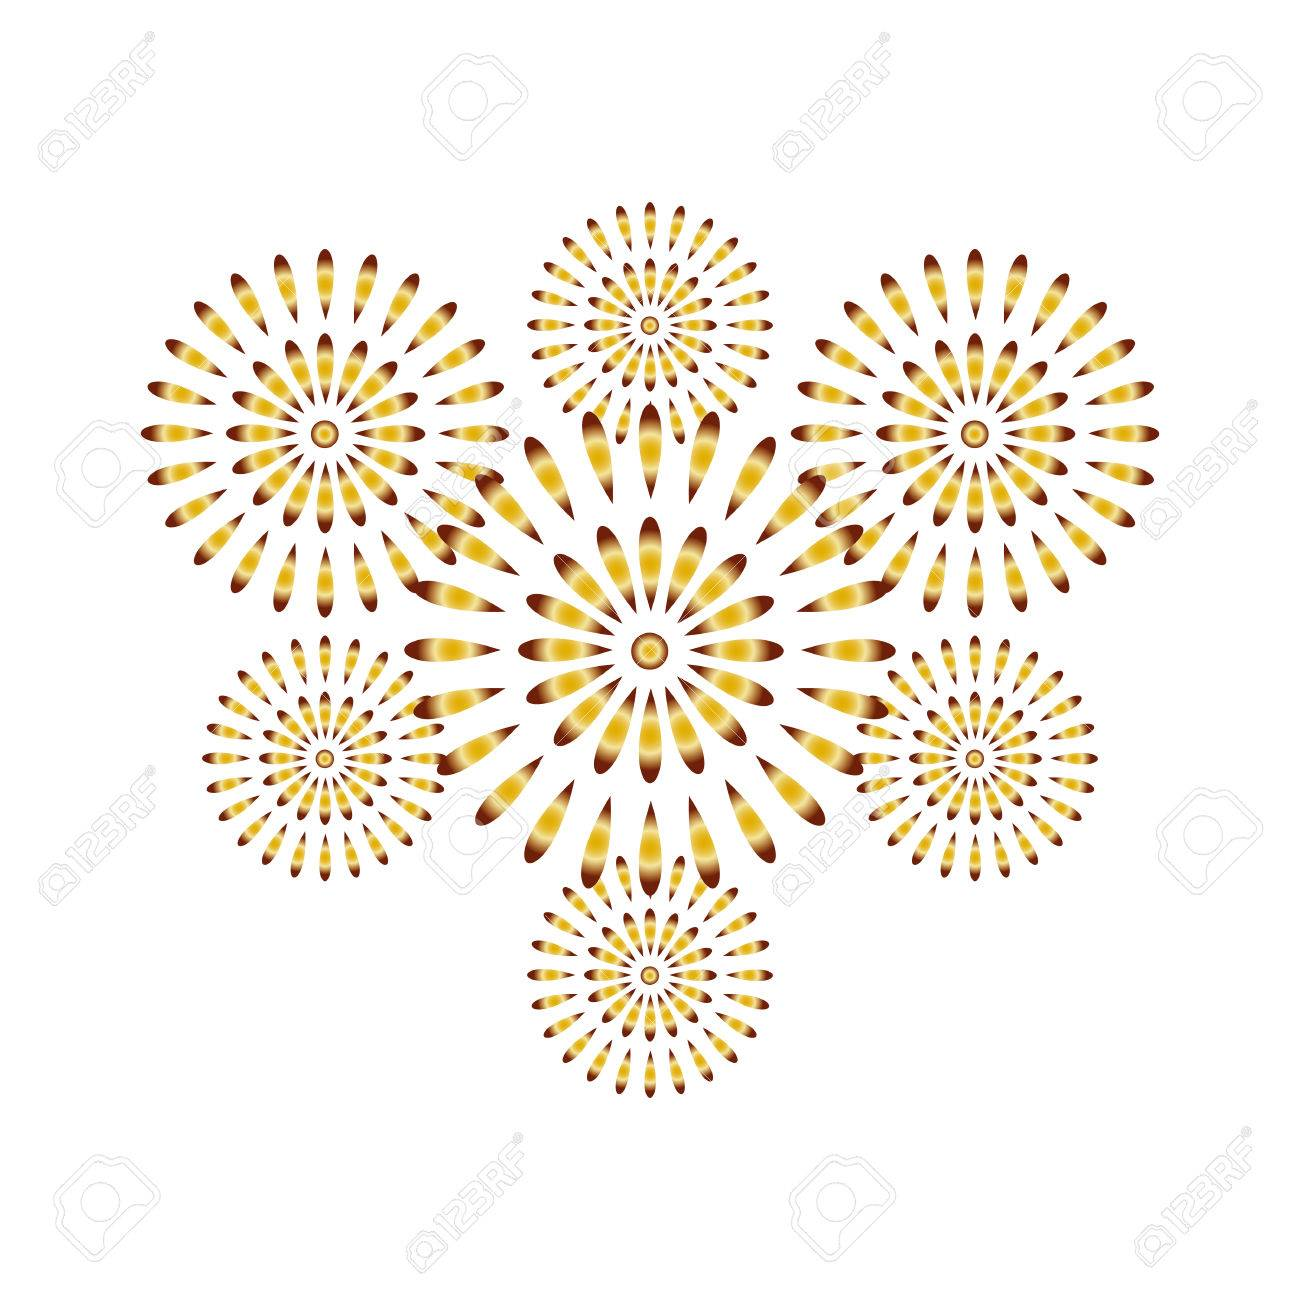 fireworks gold isolated on white background beautiful design for new year anniversary celebration and